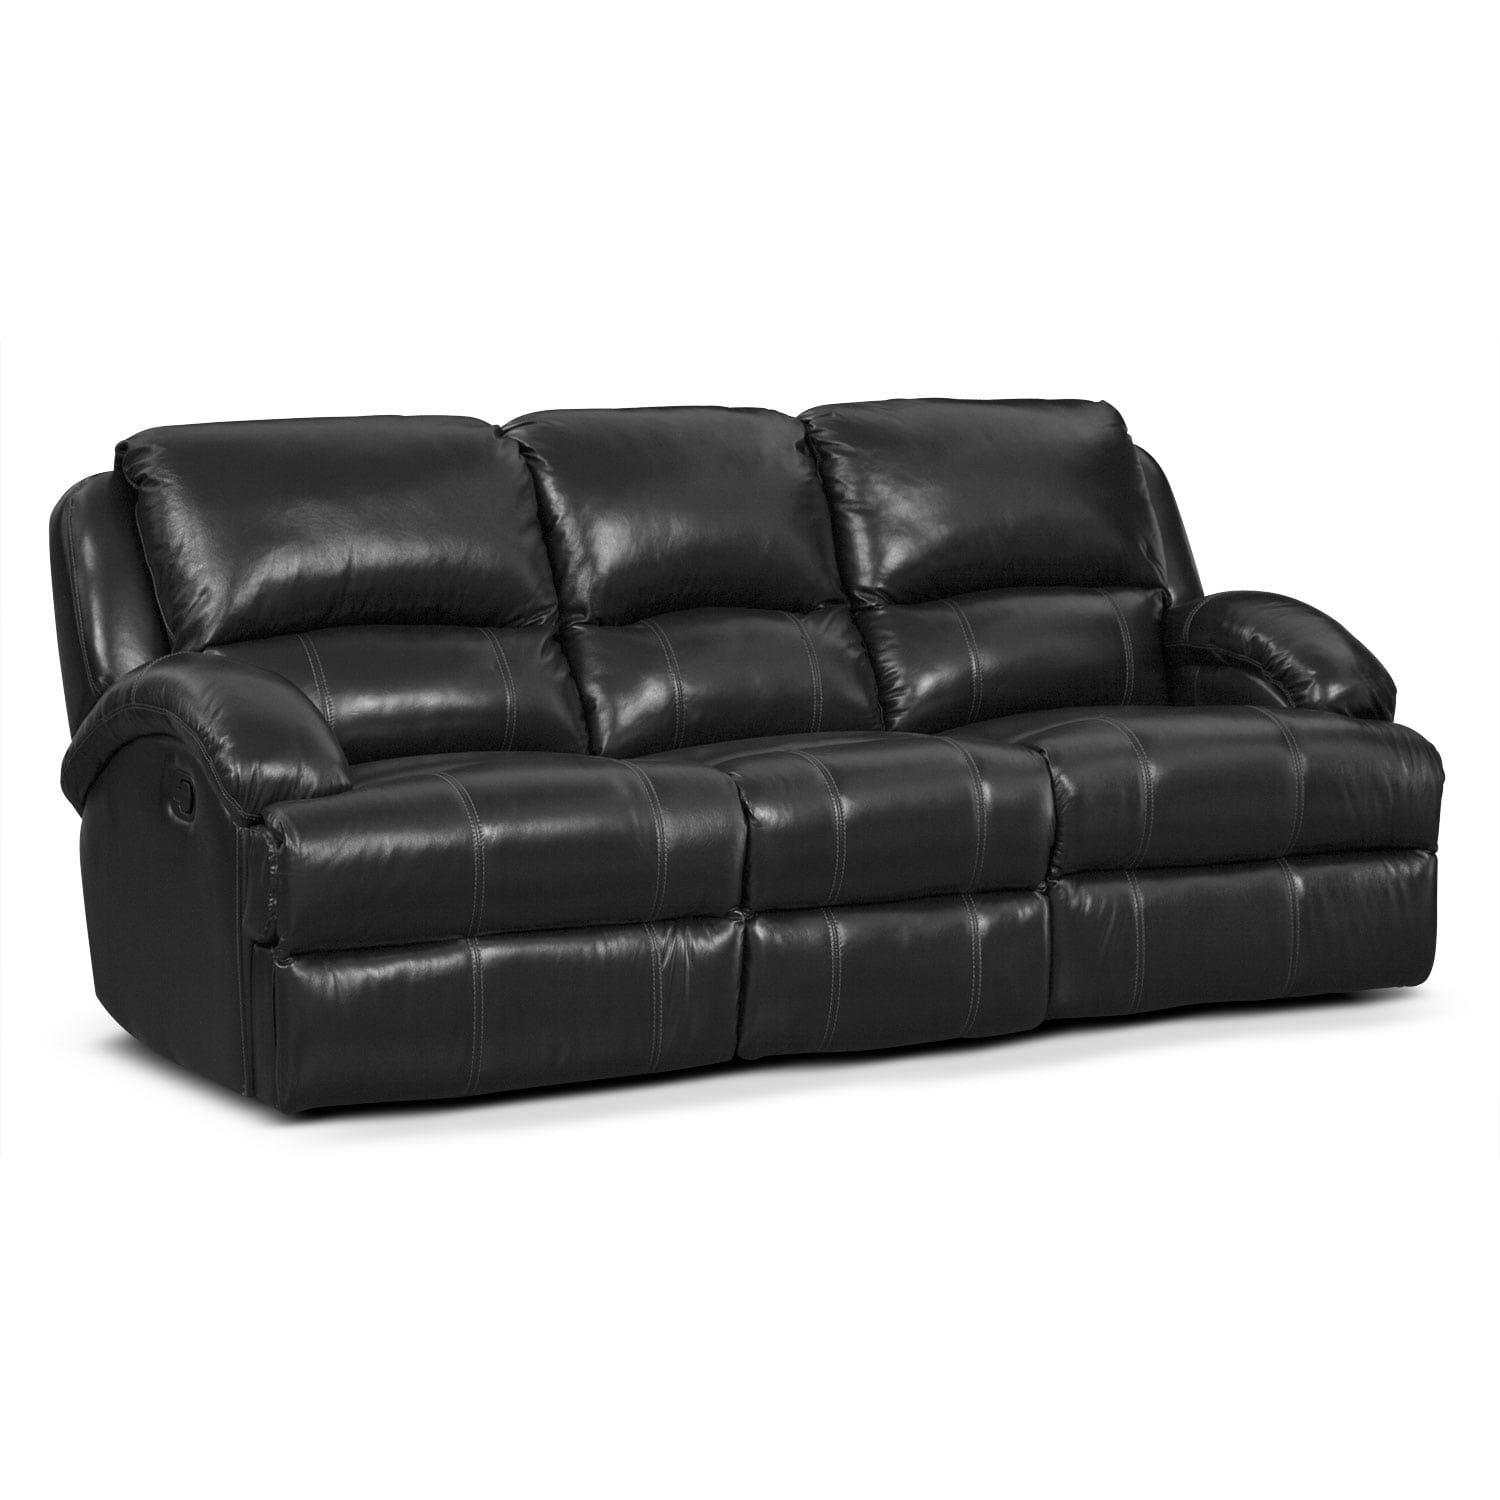 nolan power reclining sofa surfers rockers richard dorfmeister remix sofas and couches living room seating american signature